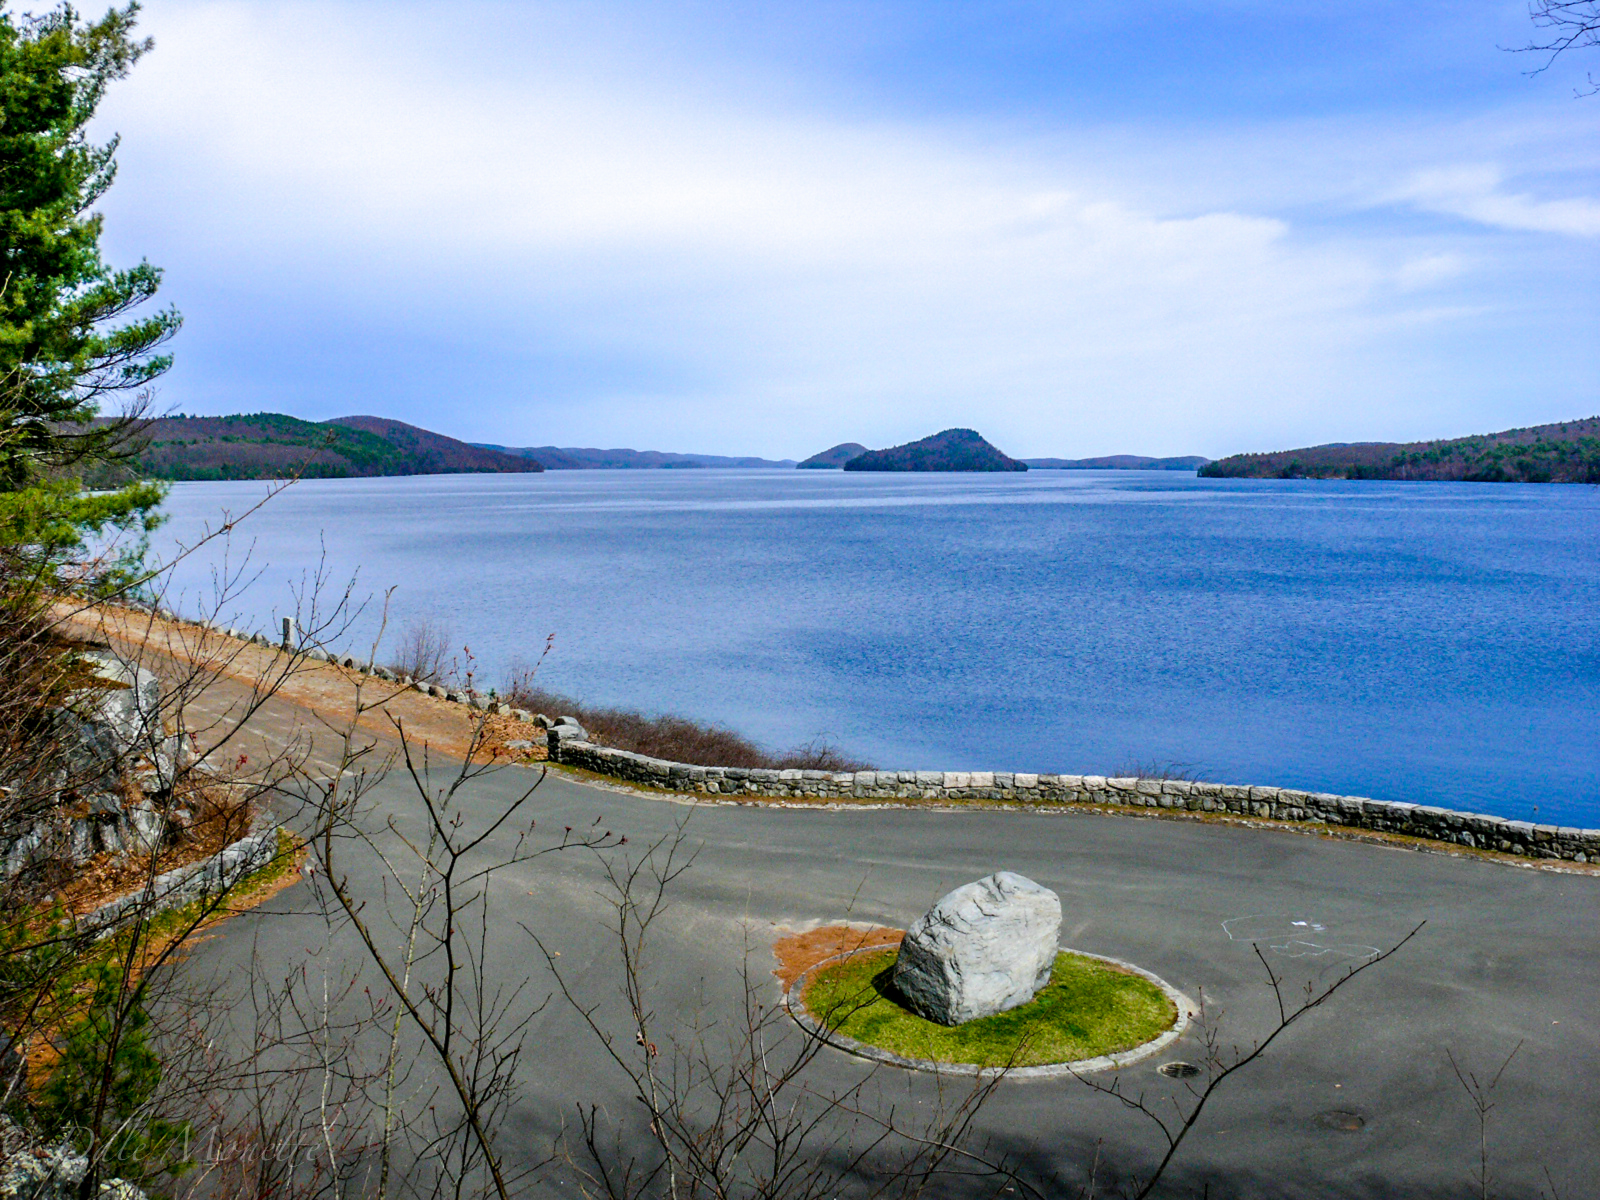 This is looking north from the Goodnough Dike in the Quabbin Park with Mt. Lizzie and Mt. Pomeroy in the distance.